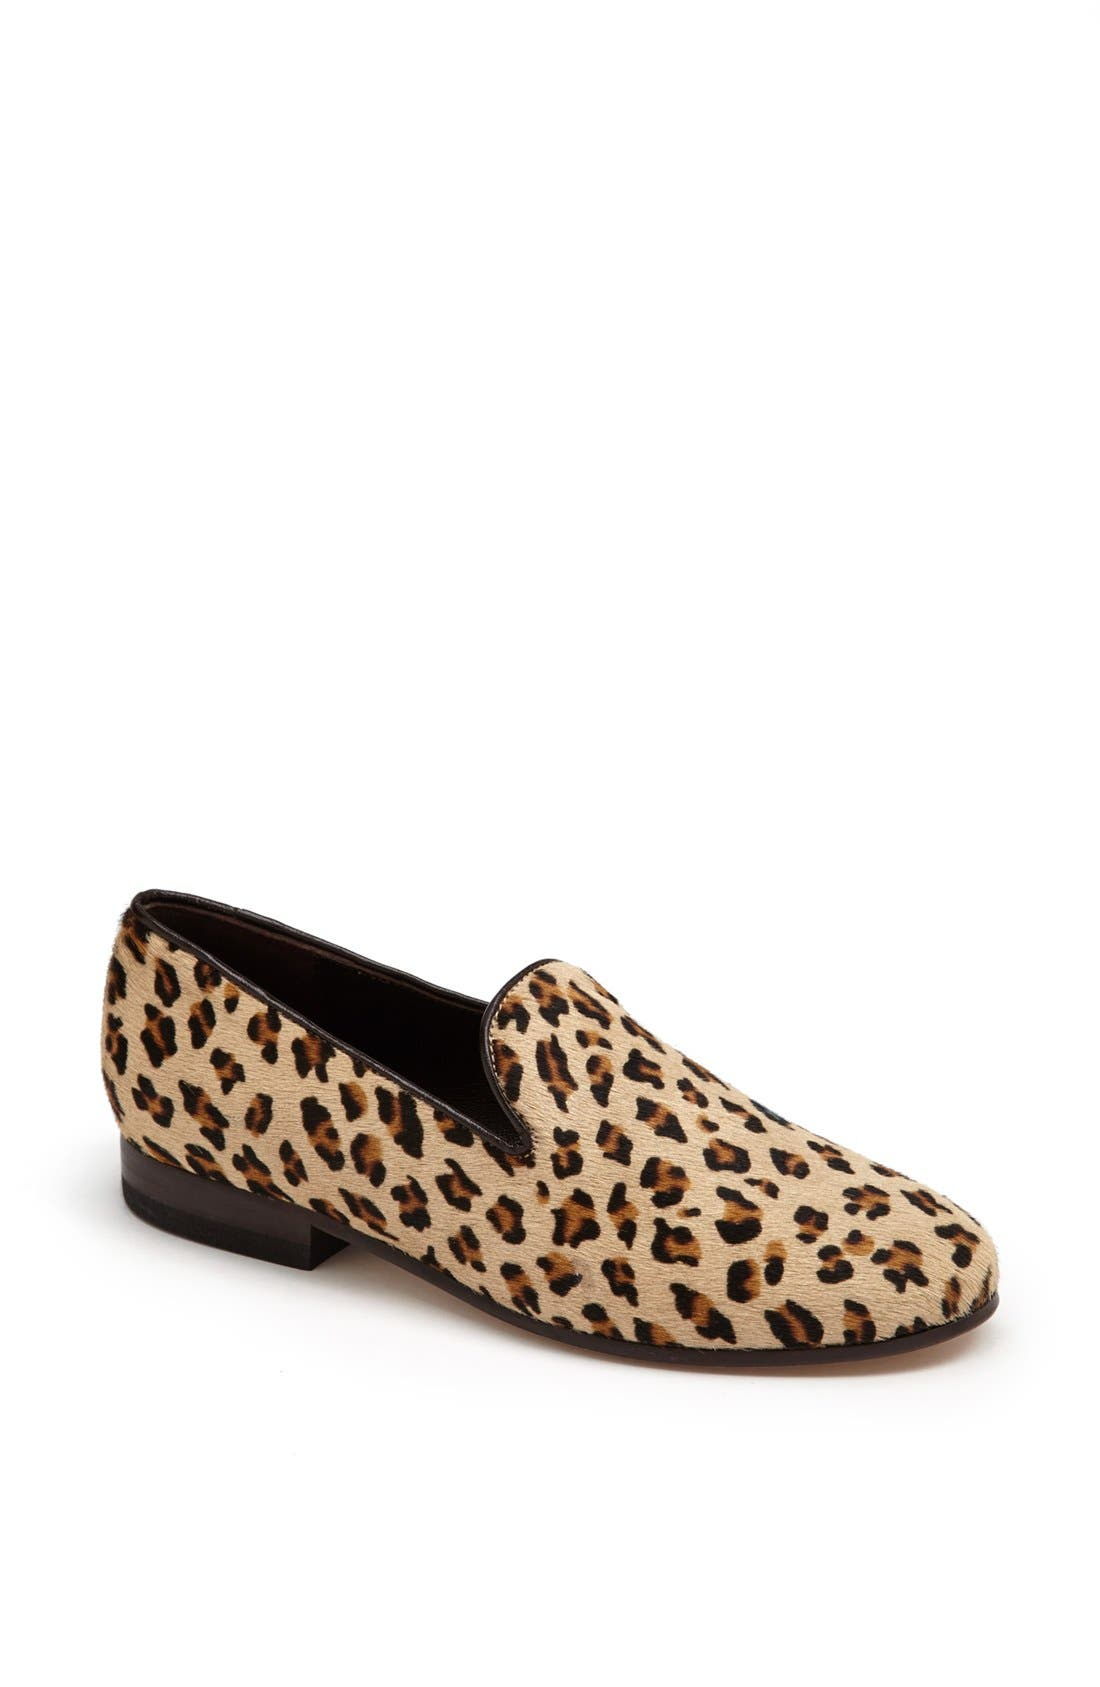 Alternate Image 1 Selected - CB Made in Italy Leopard Print Slipper Flat